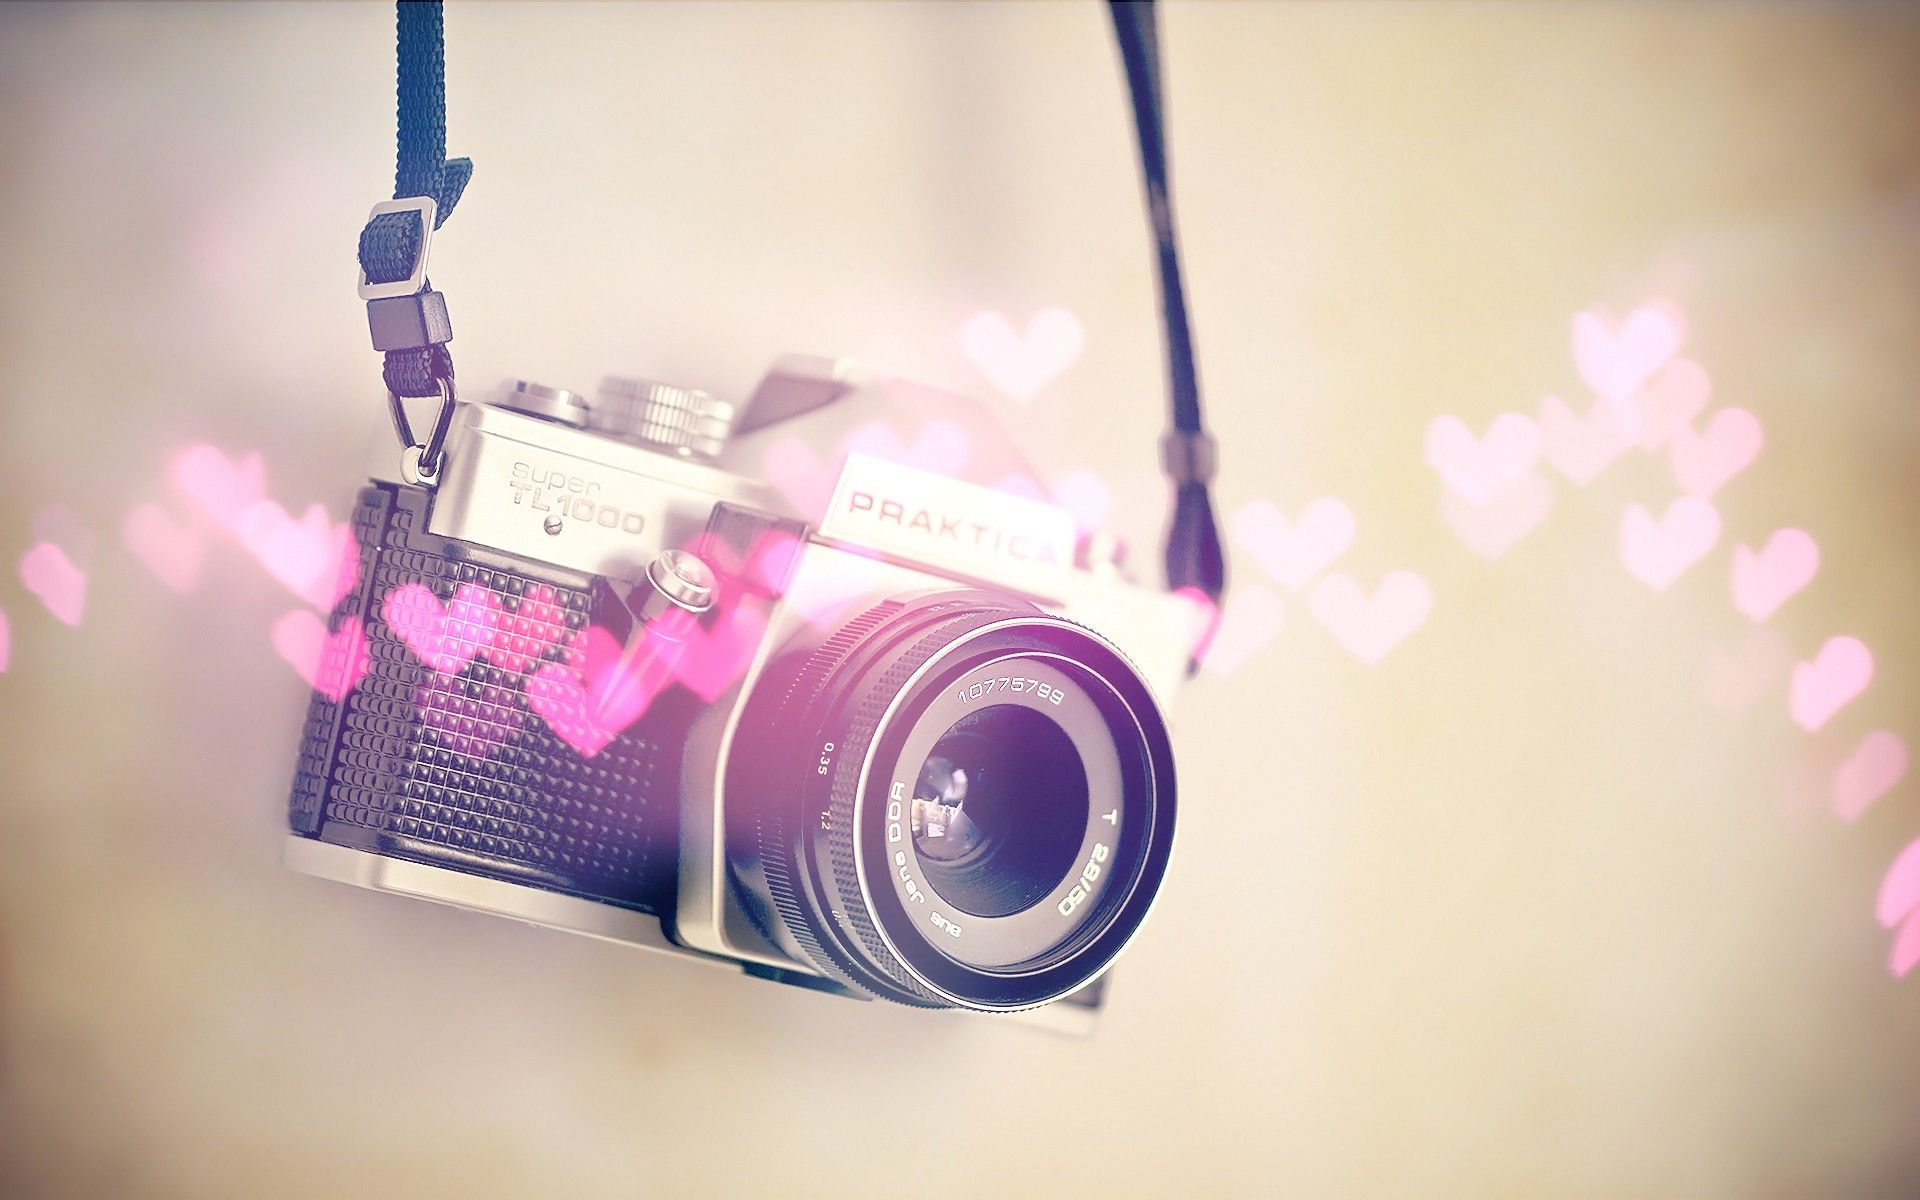 cute desktop wallpapers tumblr wallpaper full hd 7rt 1920x1200 px 244 47 kb cute girly girly